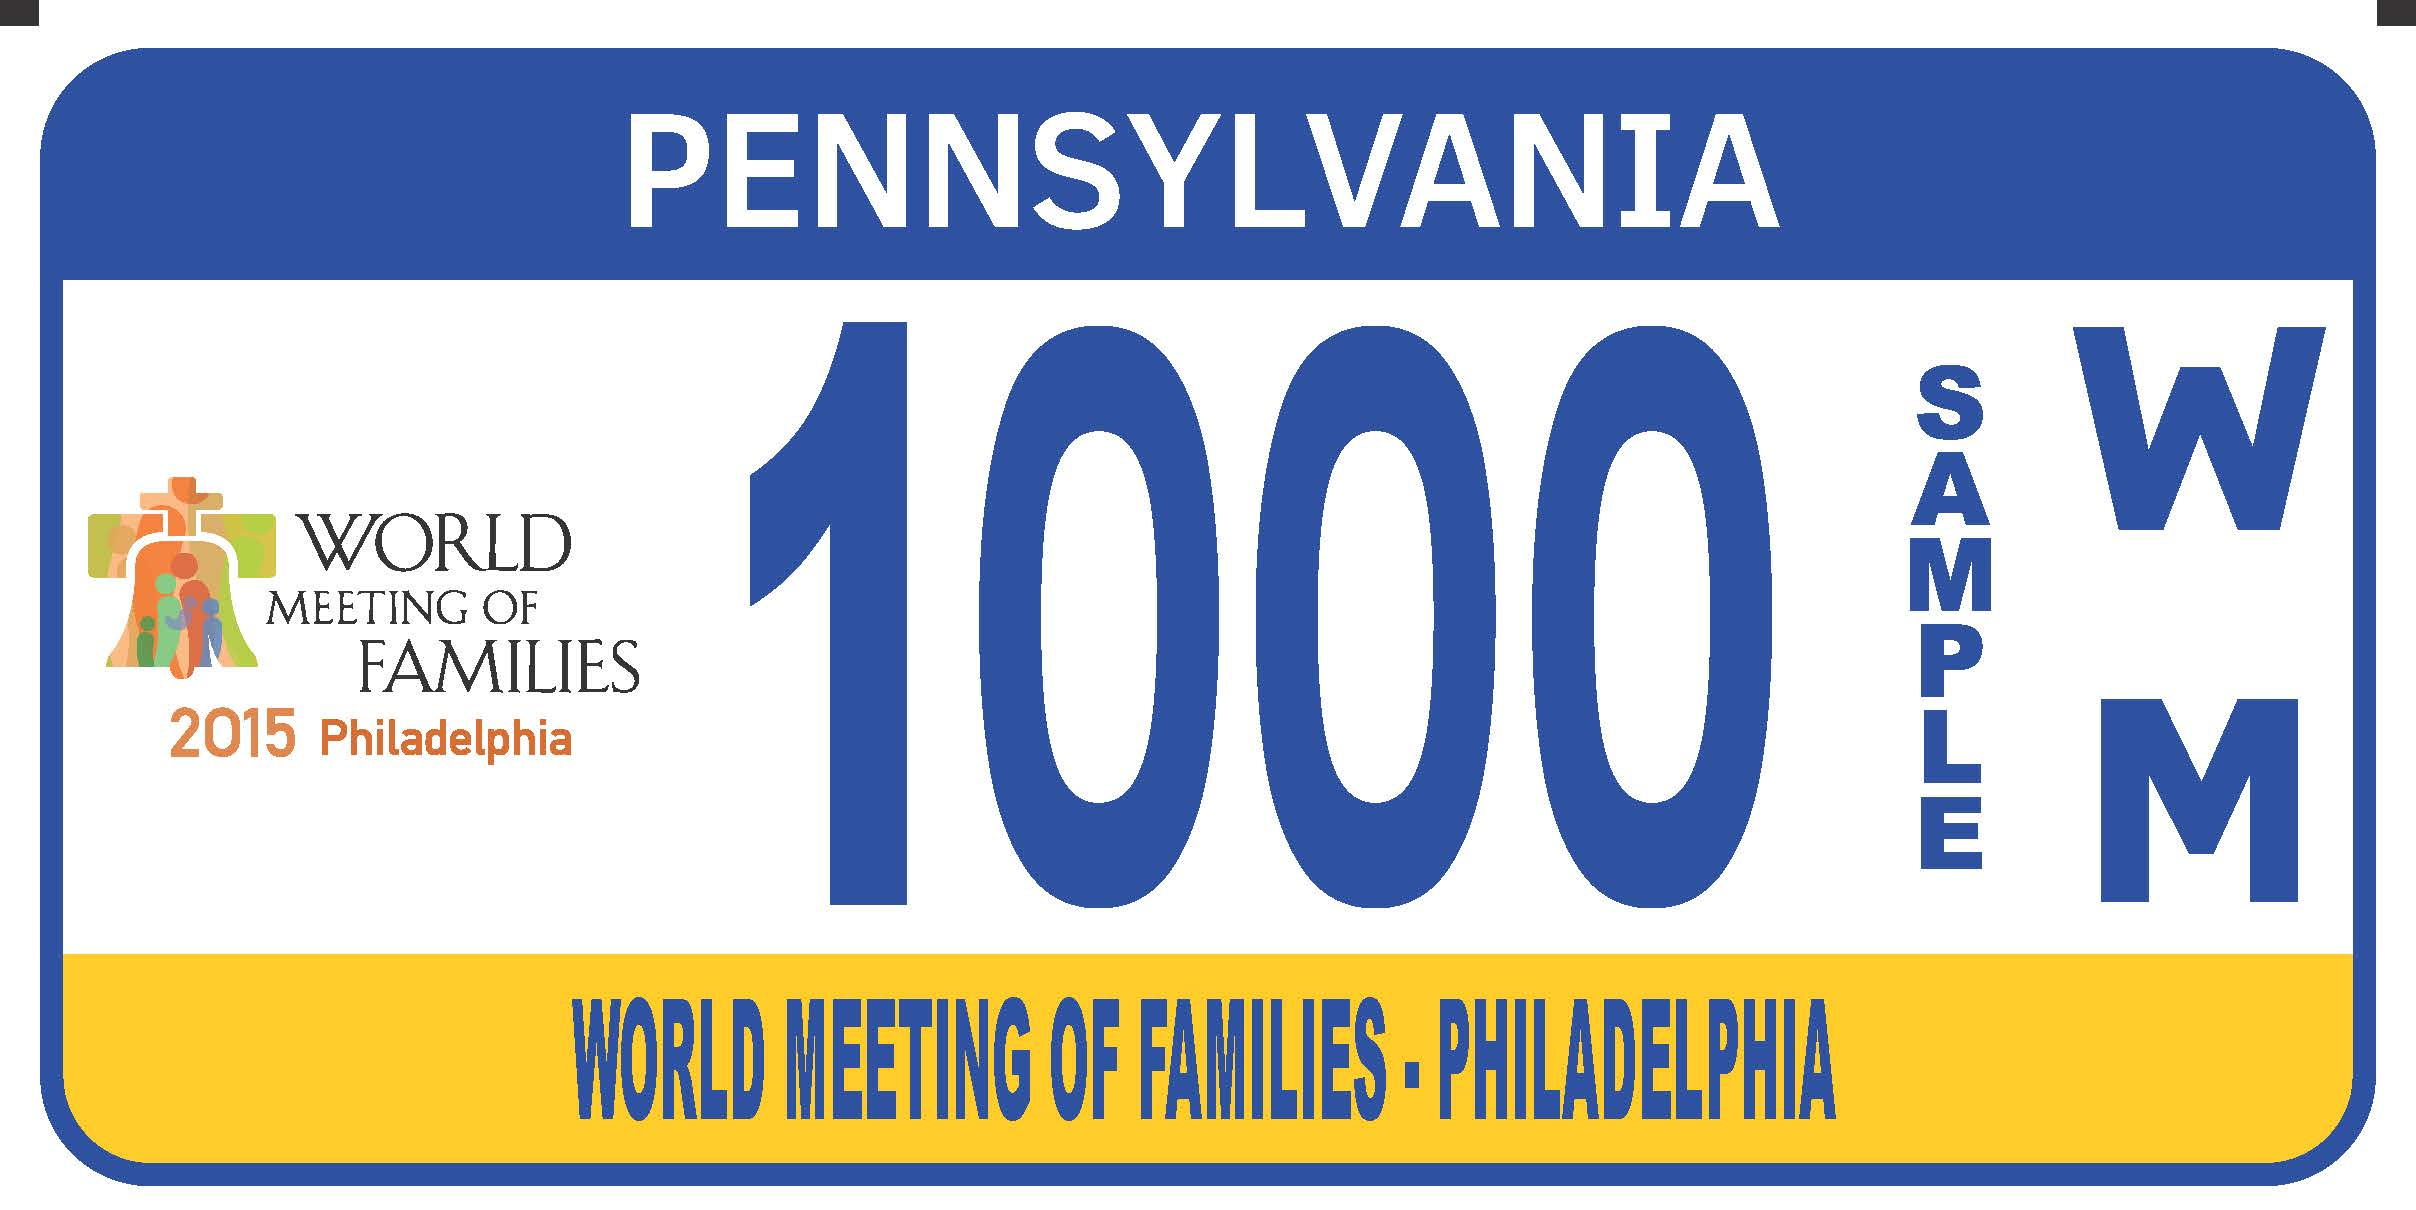 World Meeting of Families - Philadelphia